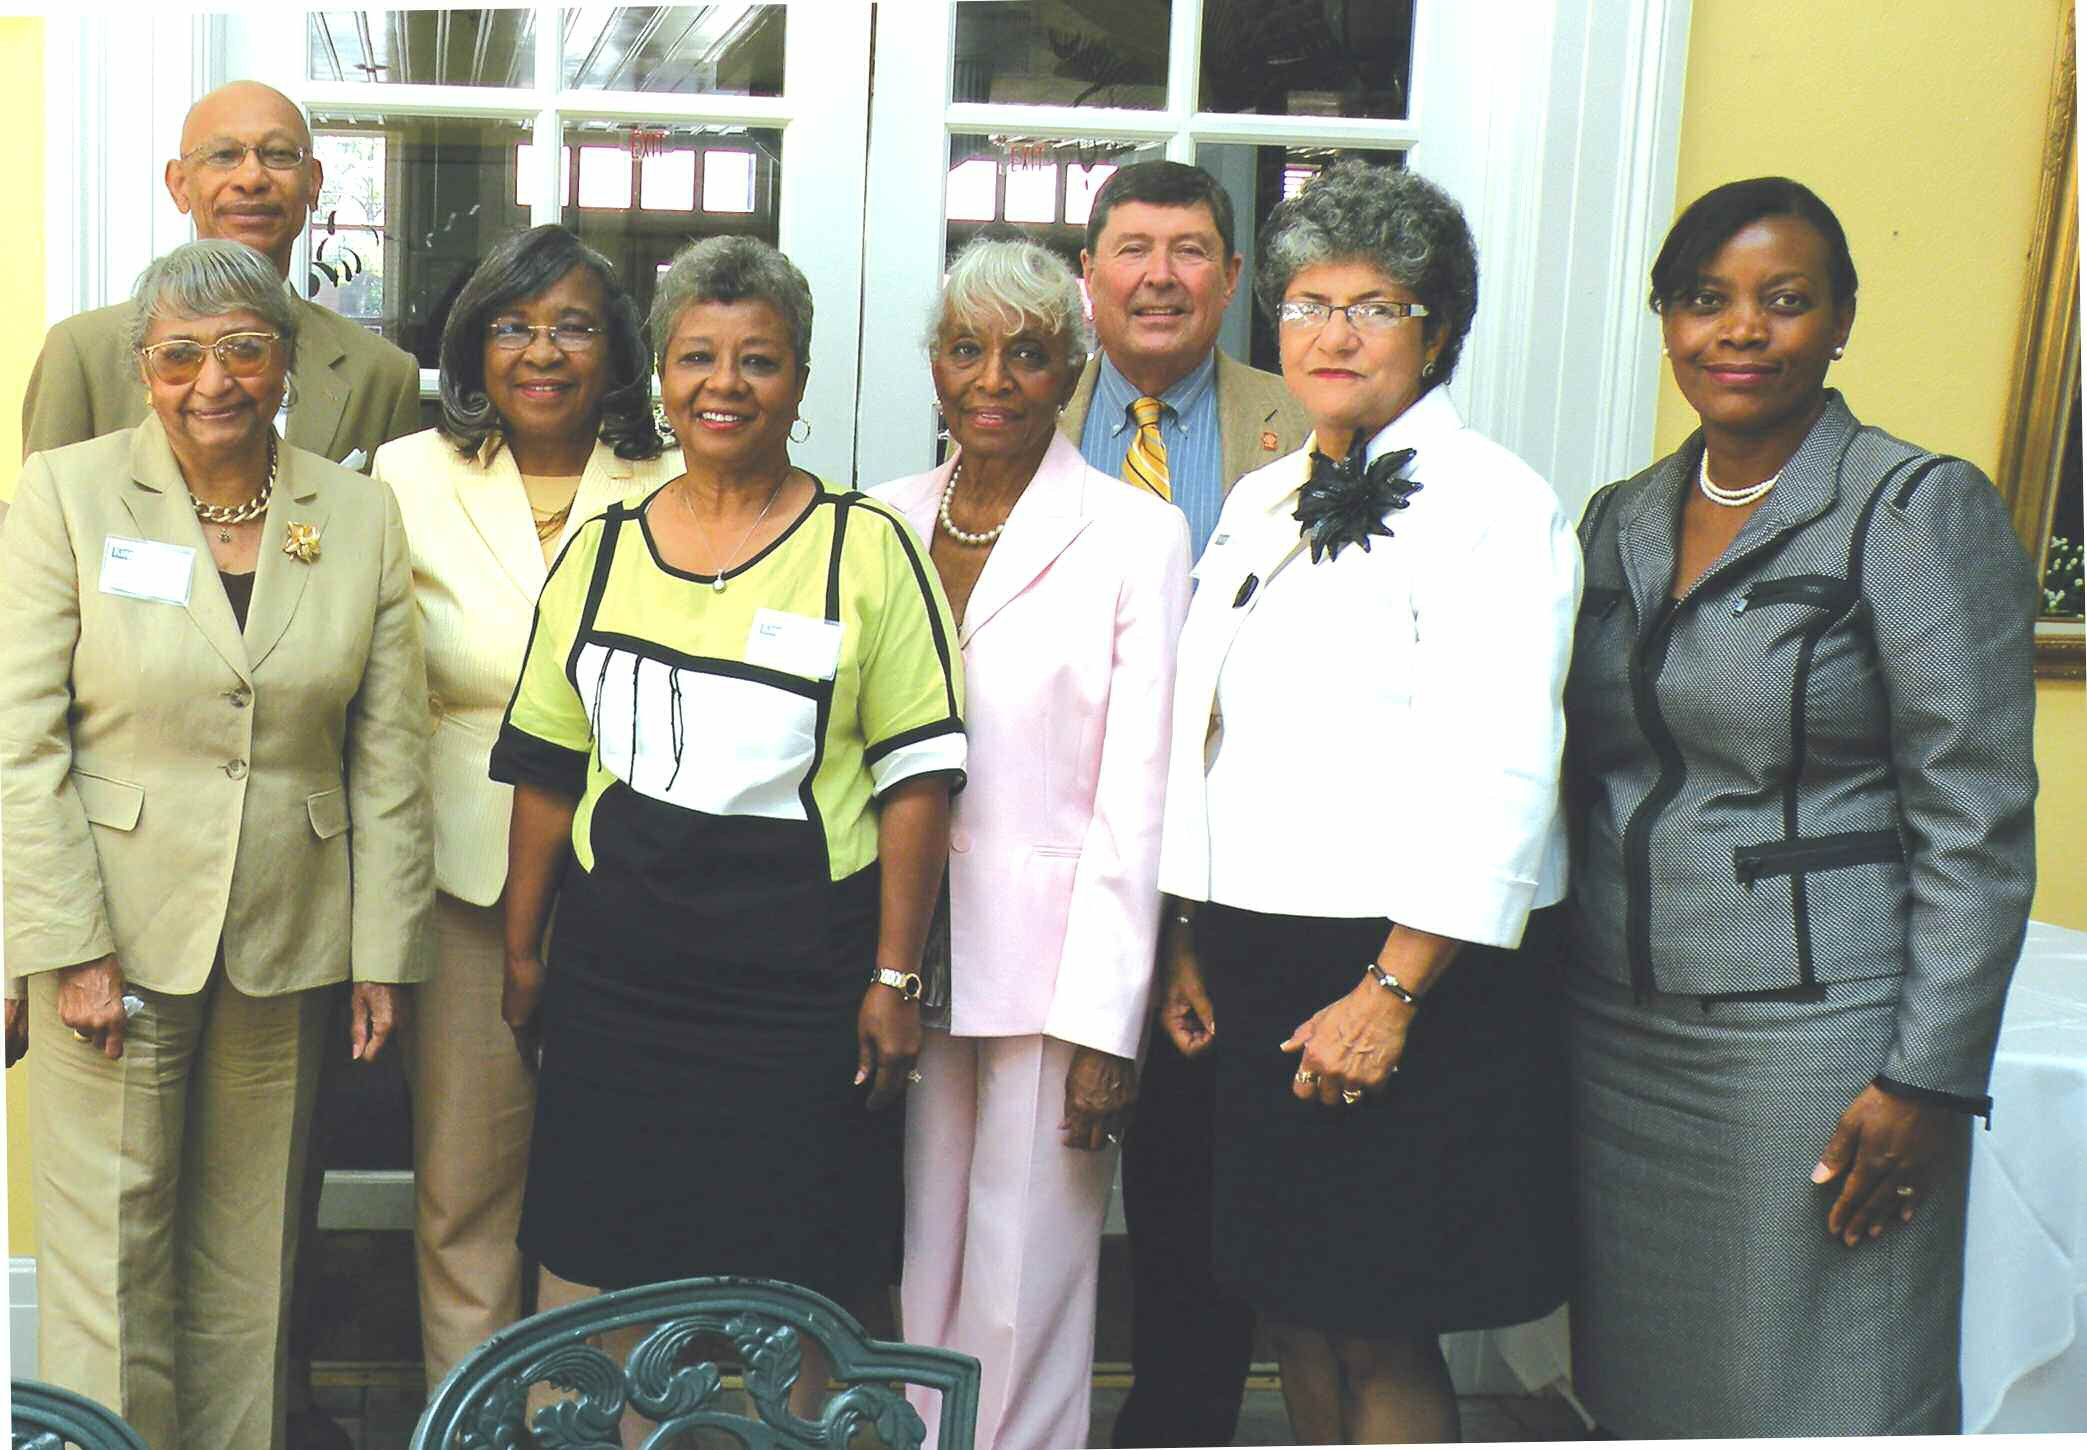 Pictured are: 2nd row (left to right) Mayor Otis Johnson, Dr. Jacquelyn W. Stephens, Dr. Joe Buck 1st row (left to right) Dr. Olivia Swanson, Mrs. Virginia A. Edwards-Maynor, Mrs. Jessie Collier DeLoach, Dr. Evelyn B. Dandy and Cathy Hill, Honorary Chairman